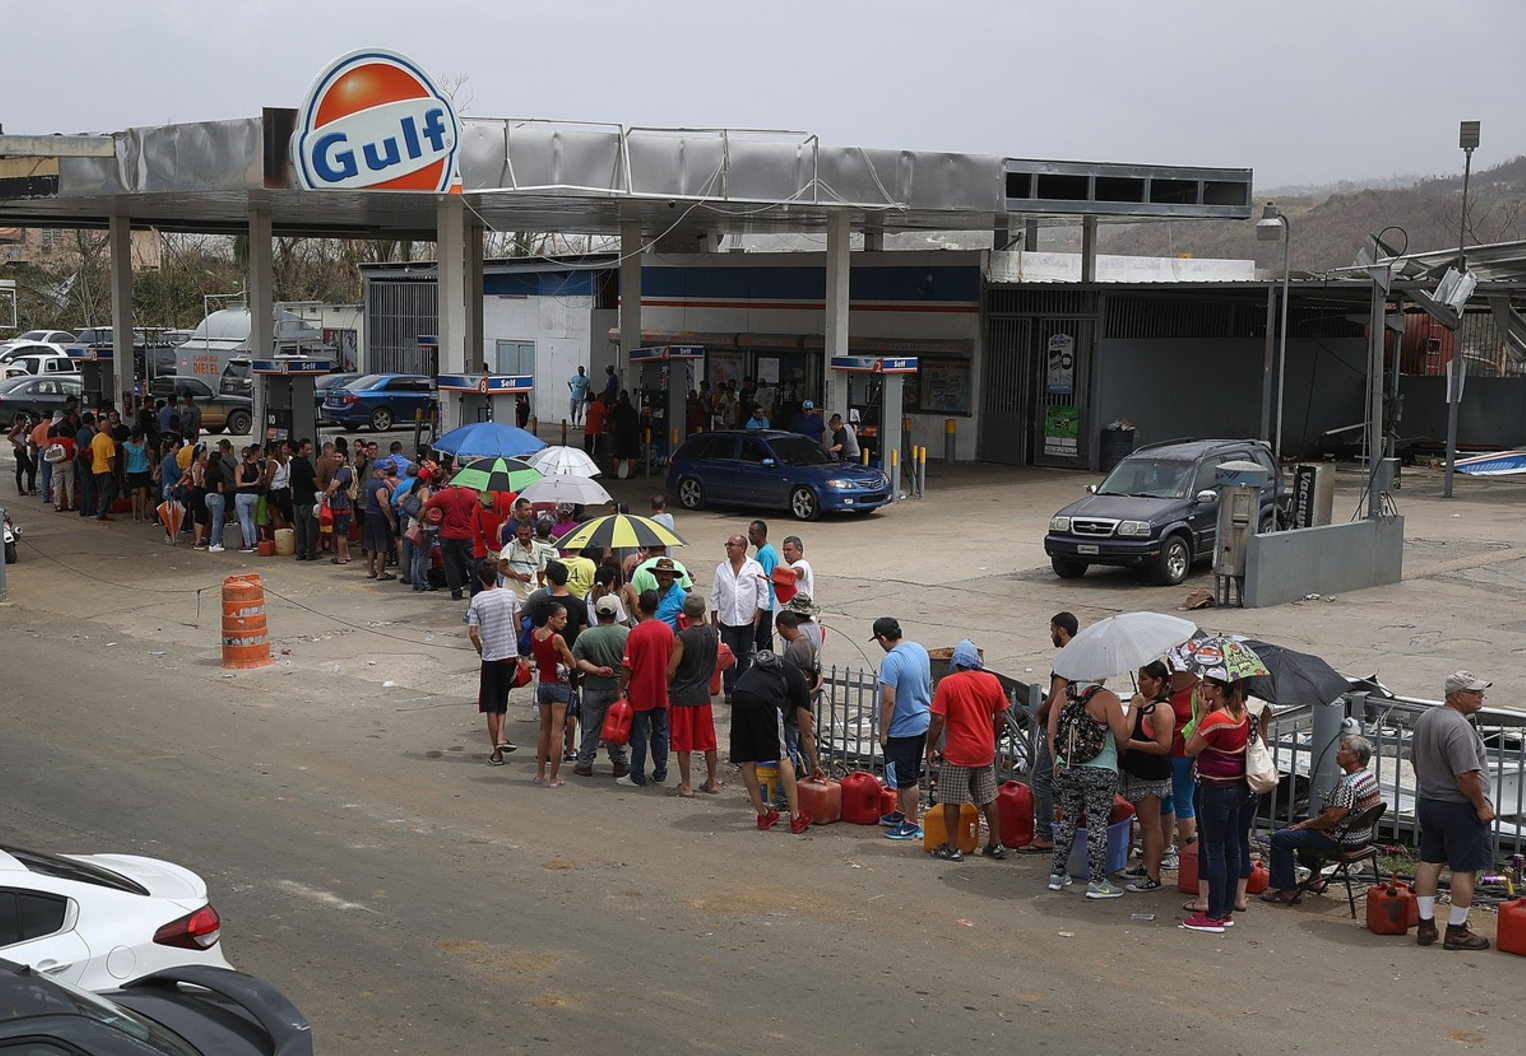 Gas shortage in Puerto Rico